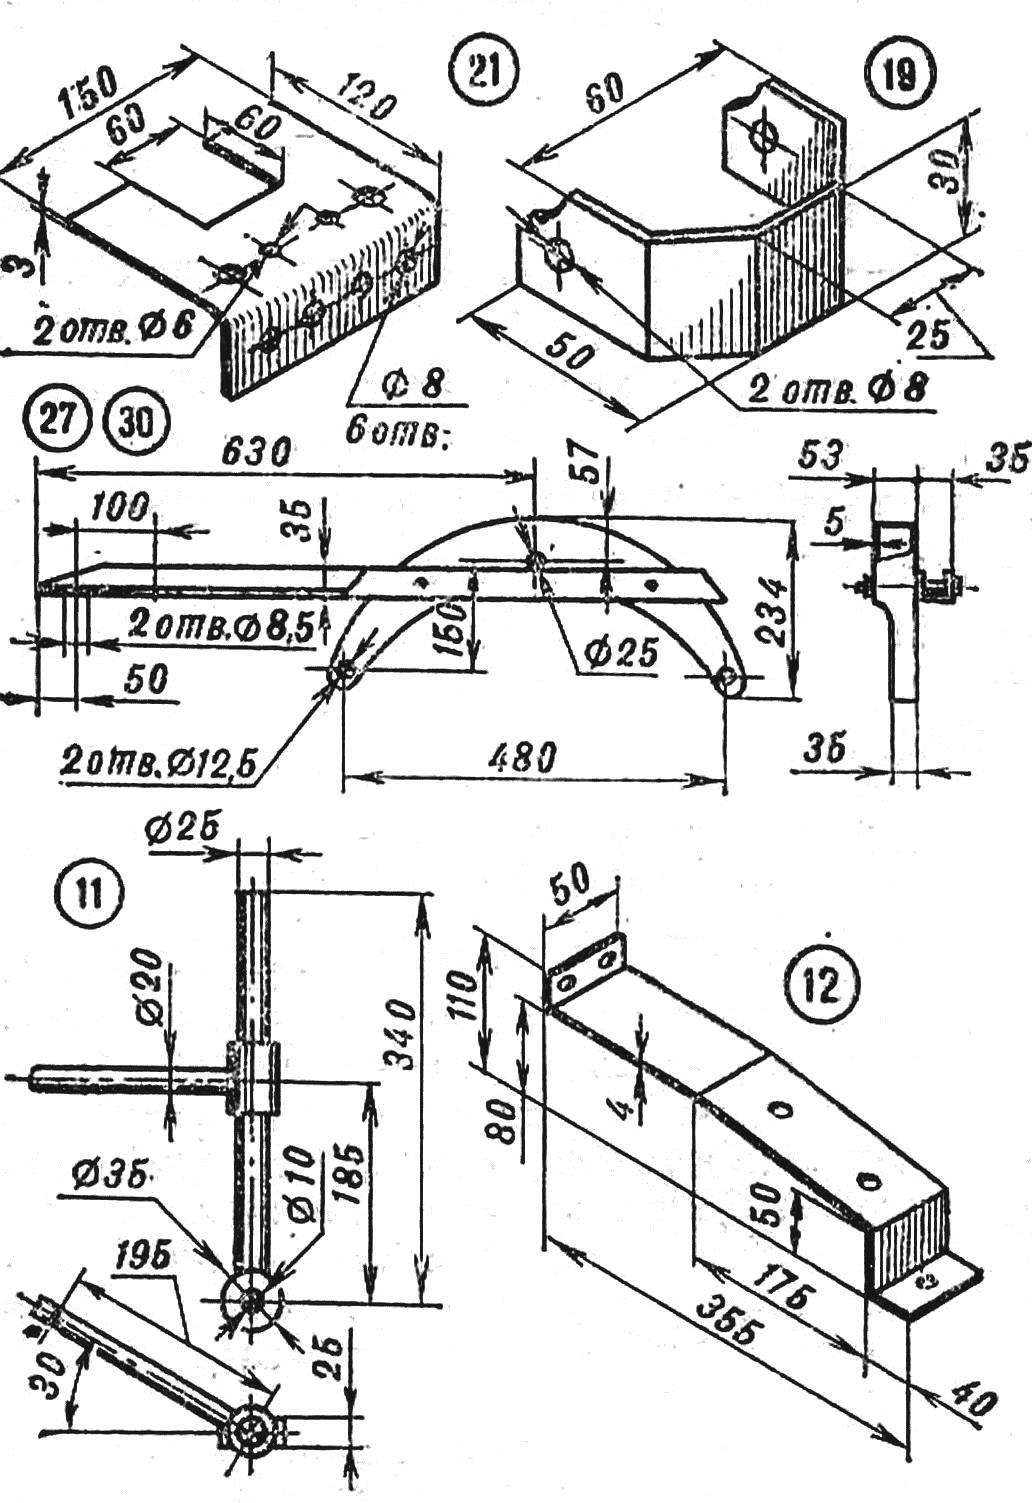 The frame of the snowmobile to the structural elements of propulsion and transmission